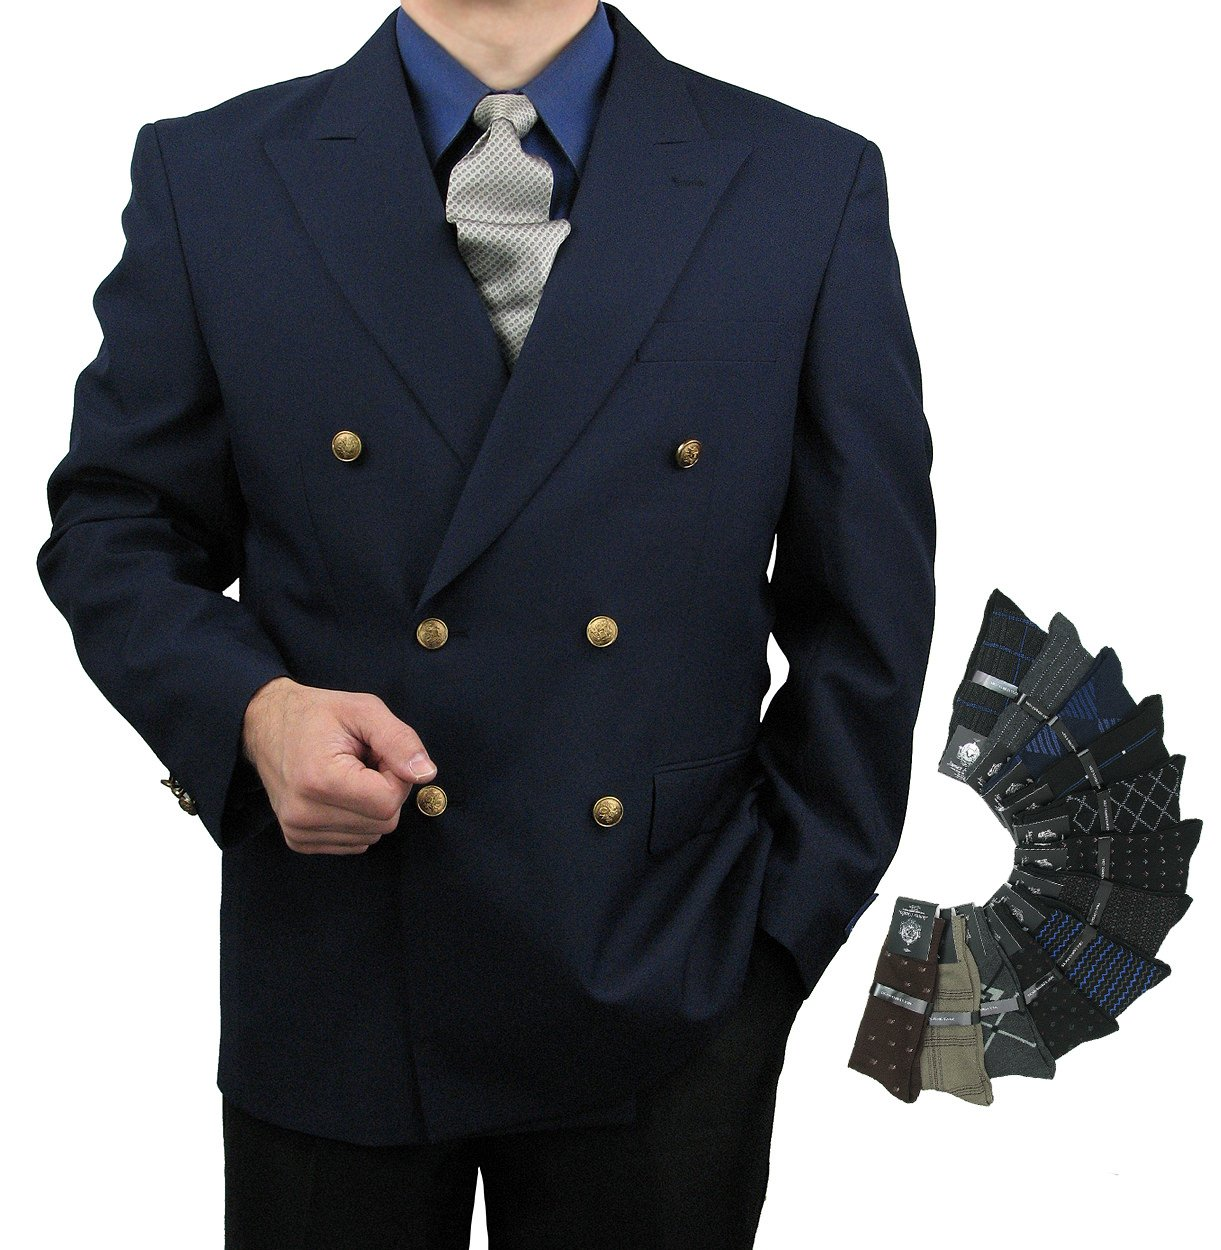 Triple Blessings Men's Classic Fit Double-Breasted Blazer Jacket Sports Coat w/One Pair Of Dress Socks - Navy 46R